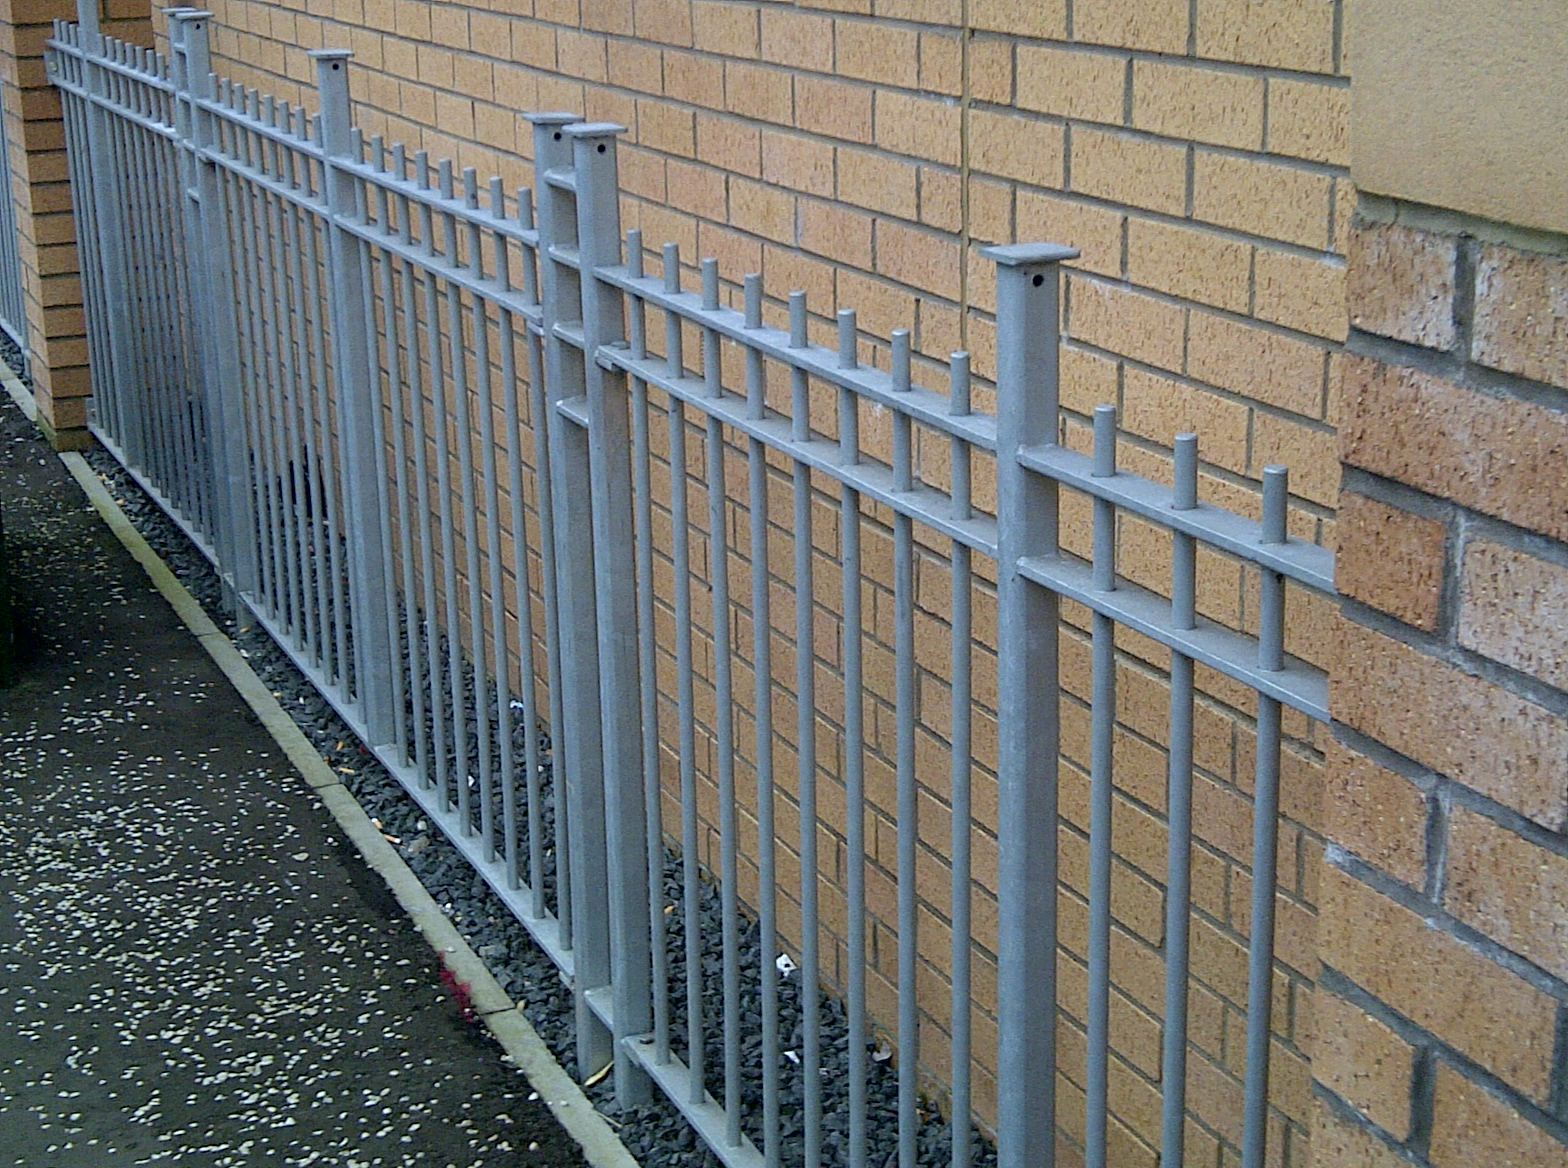 Bespoke railings, Architectural metalwork